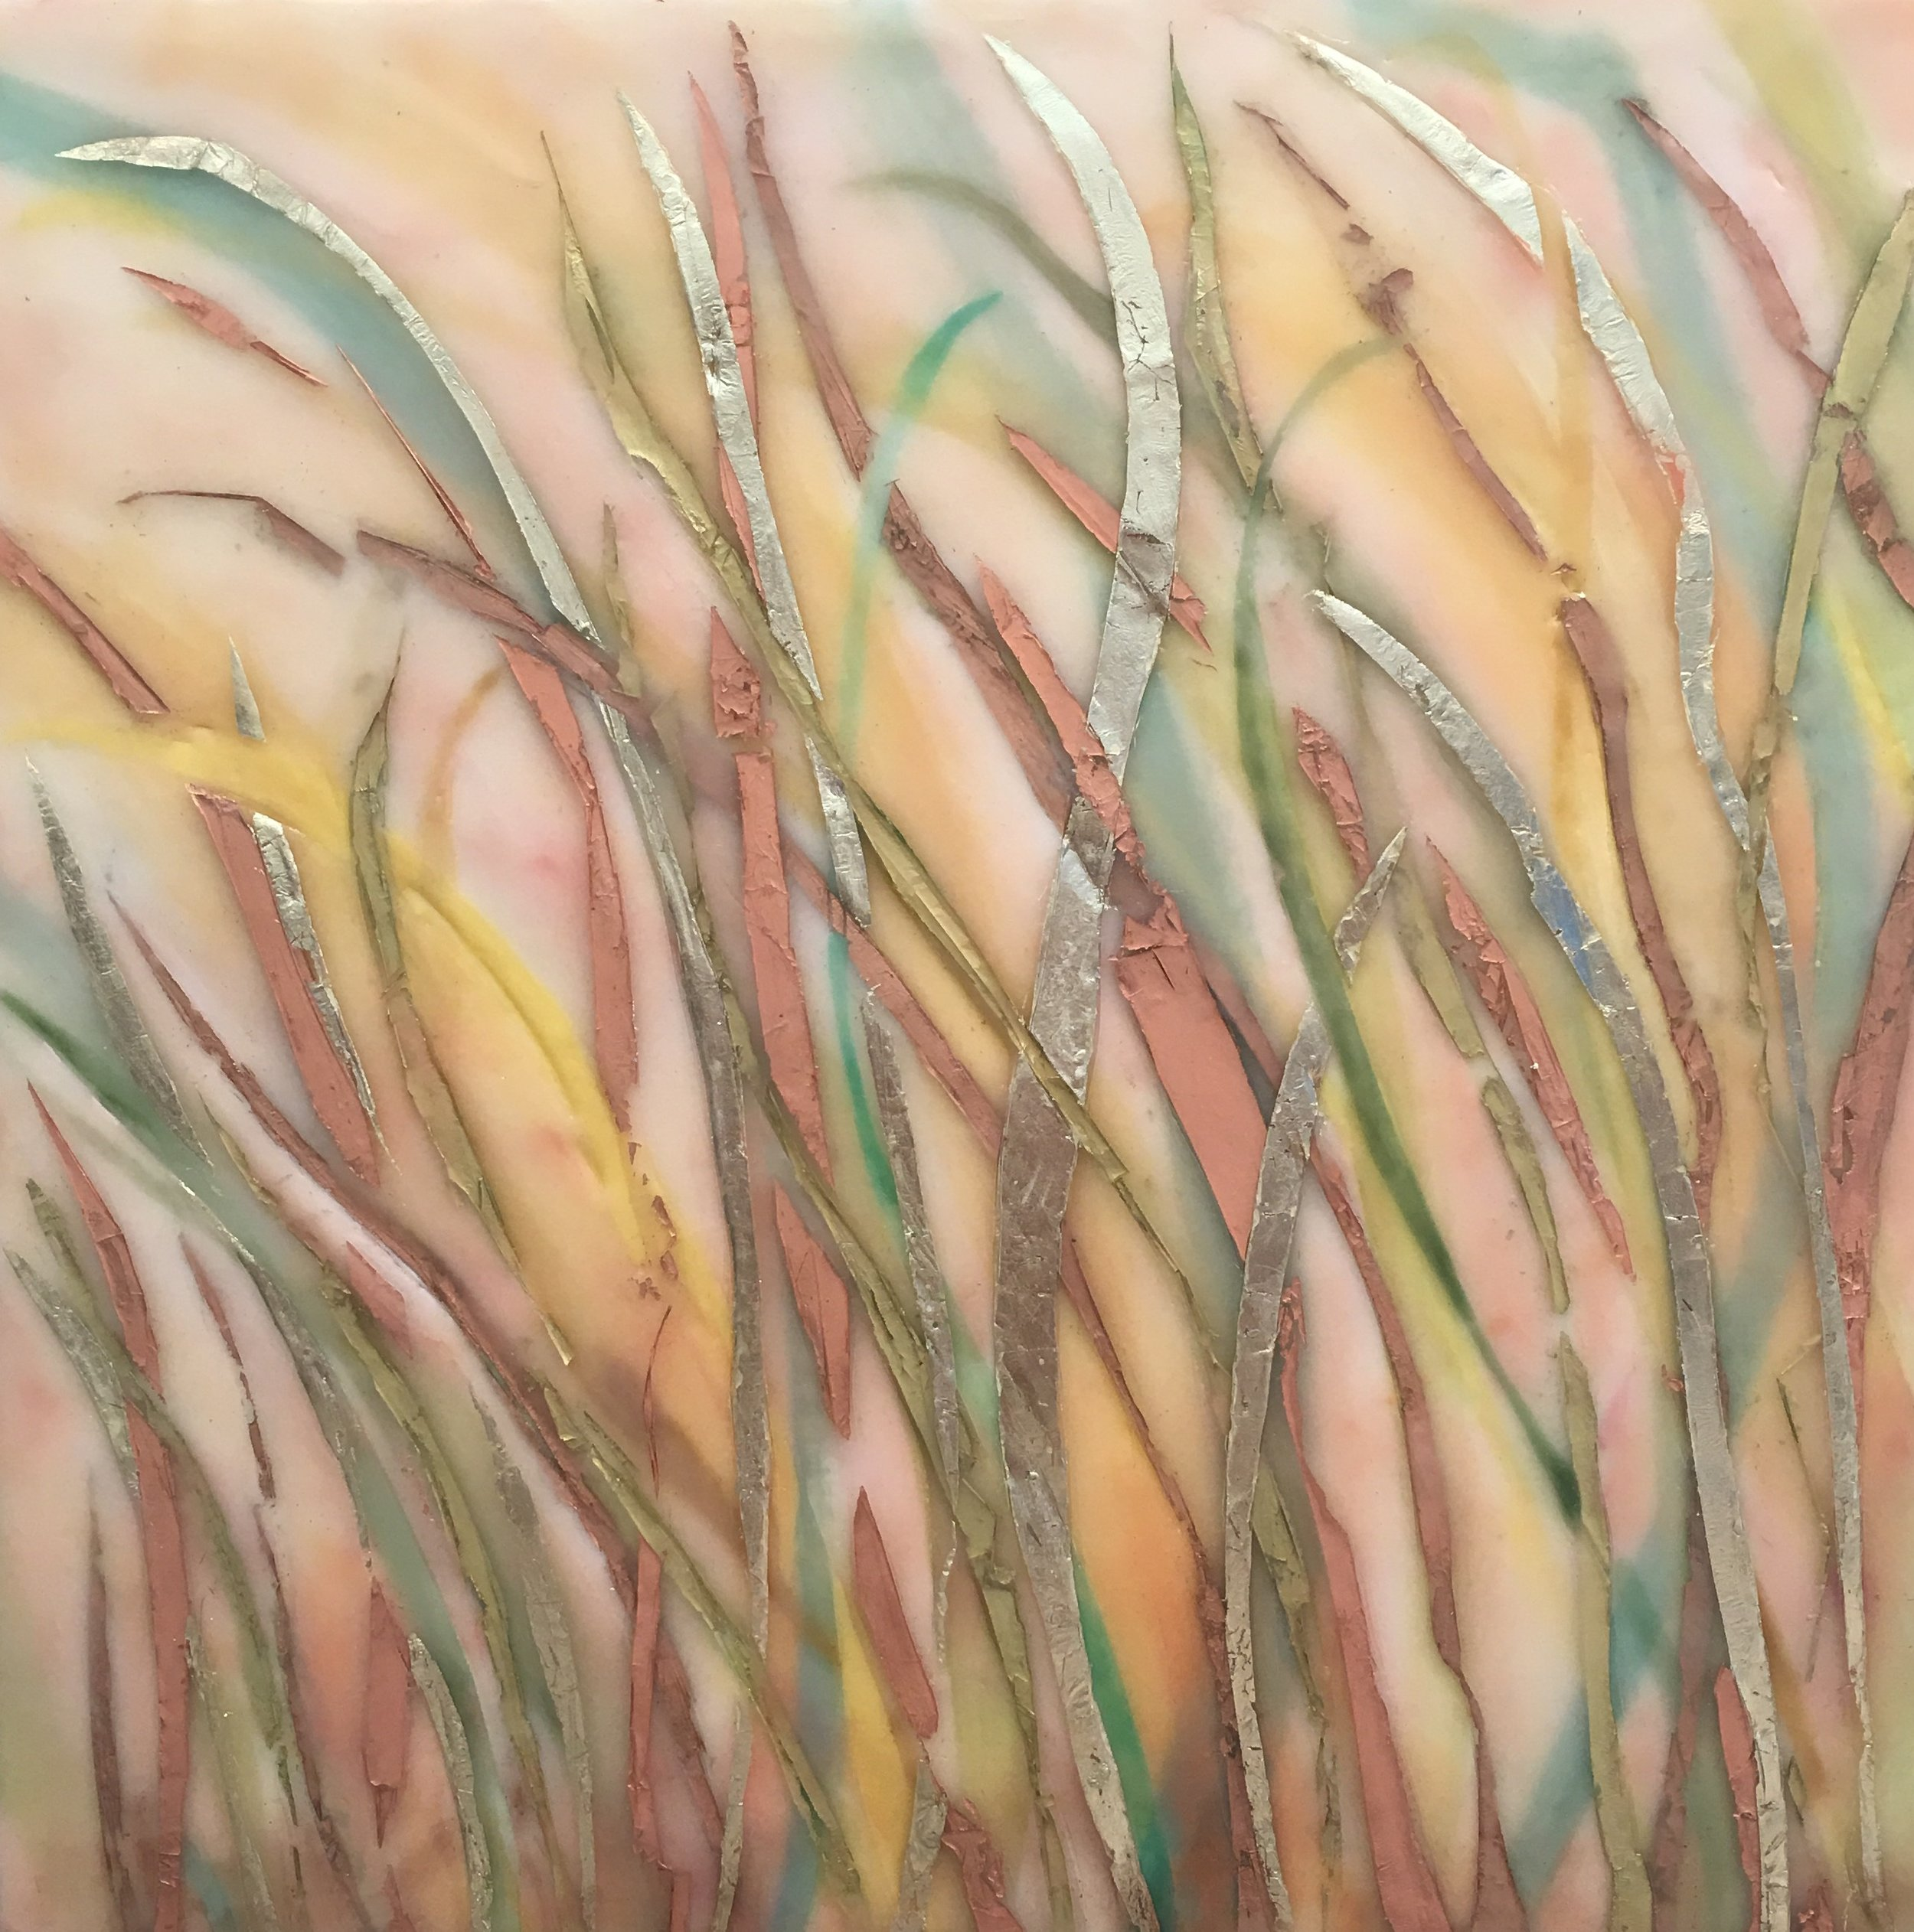 "Wind + Grasses  by Maggie Simonelli * (sold) Encaustic, Japanese coral, Arabian malachite, Japanese ikamomo glass pigment, 16 kt pale gold leaf, bee pollen, oxidizing copper and aluminum leaf, CHANEL 204 TISSE VENDOME eyeshadows and pigments on birch panel, 16 x 16"" (sold)  * Exhibited  Themes of Love  encaustic paintings by Maggie Simonelli at Gary Marotta Fine Art, 2017 Provincetown, MA"